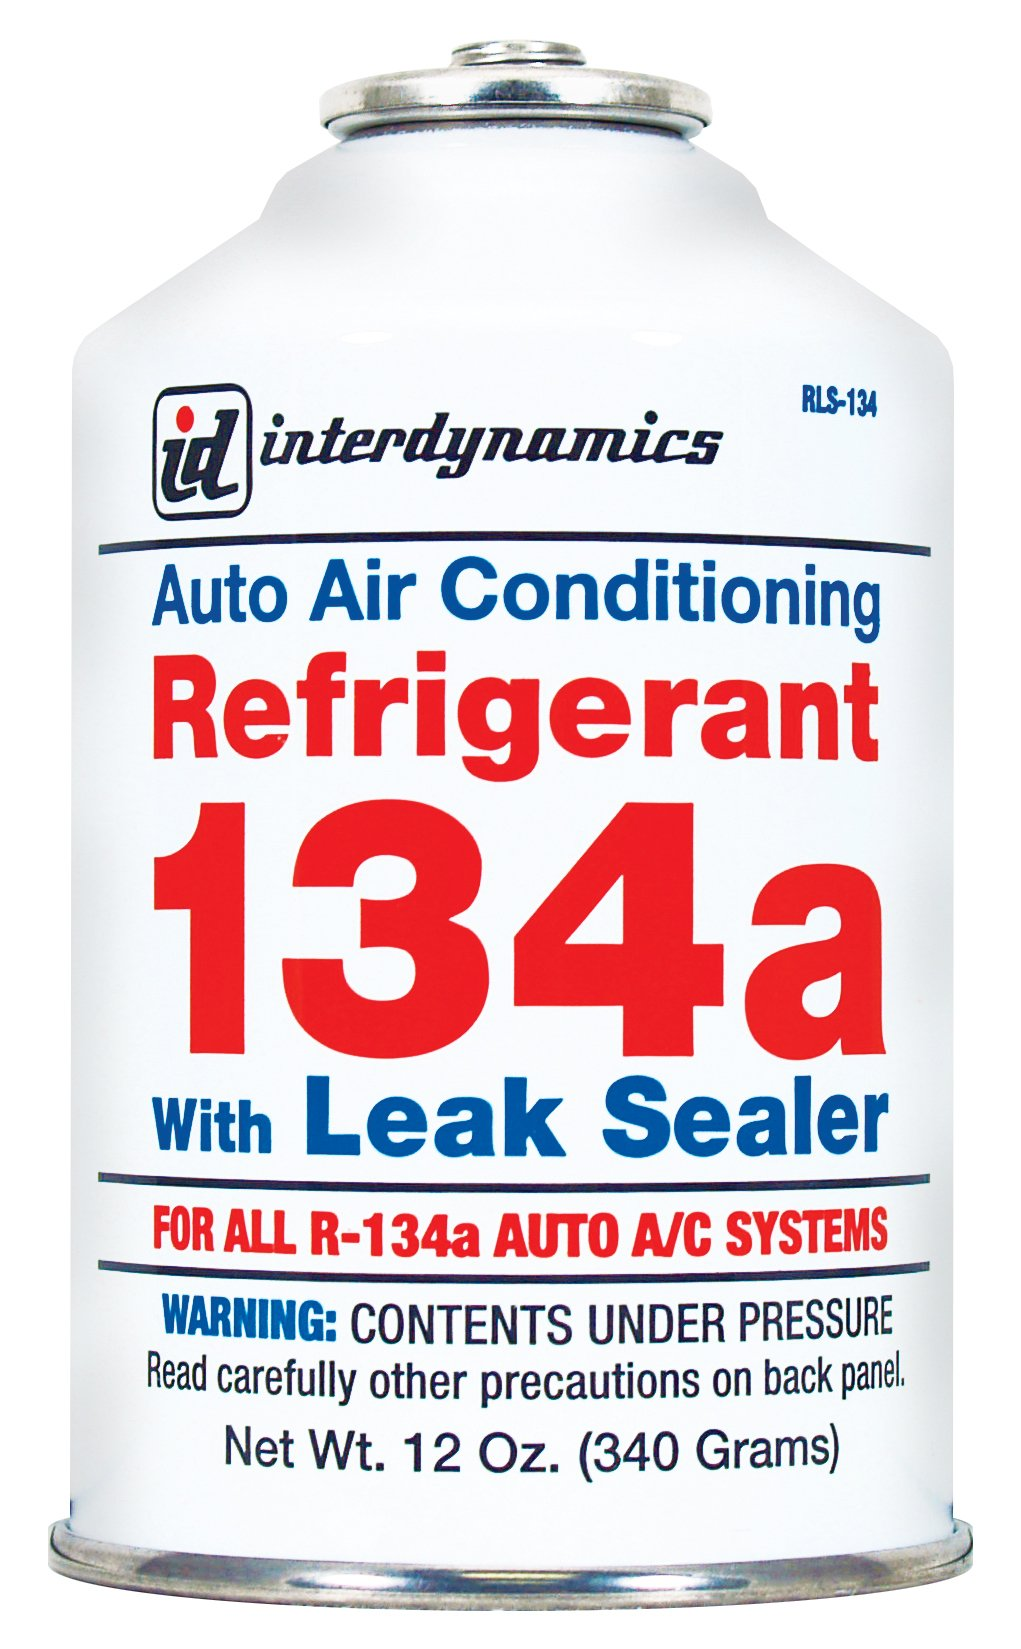 Interdynamics (RLS-134CA-12PK) R-134a Refrigerant with Leak Sealer - 12 oz., (Pack of 12) by Interdynamics